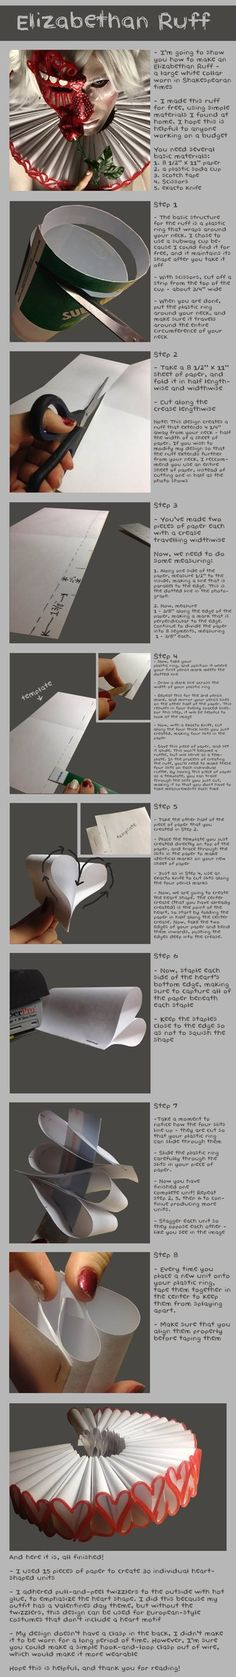 Elizabethan Ruff Tutorial by *Bllacksheep